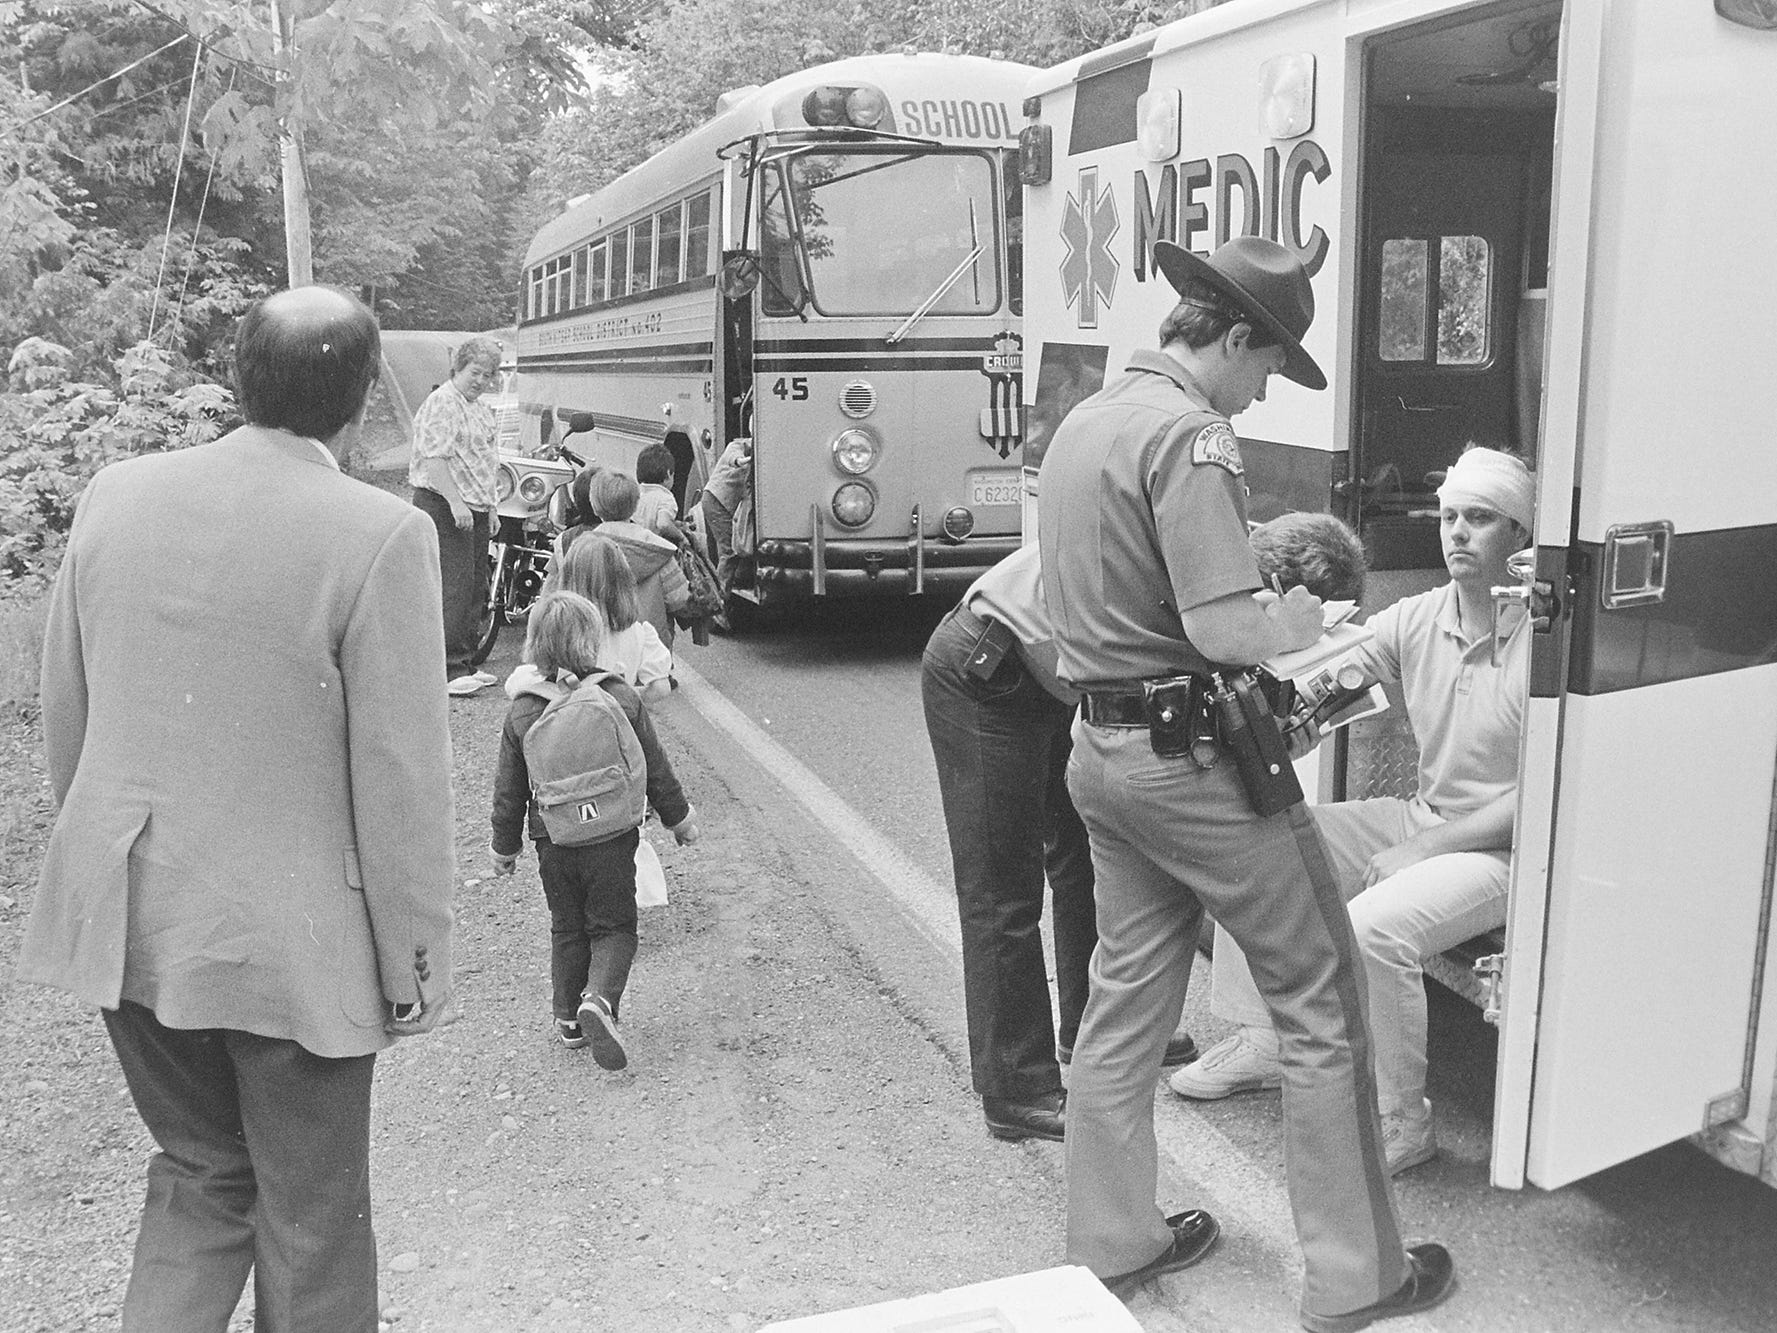 05/20/88